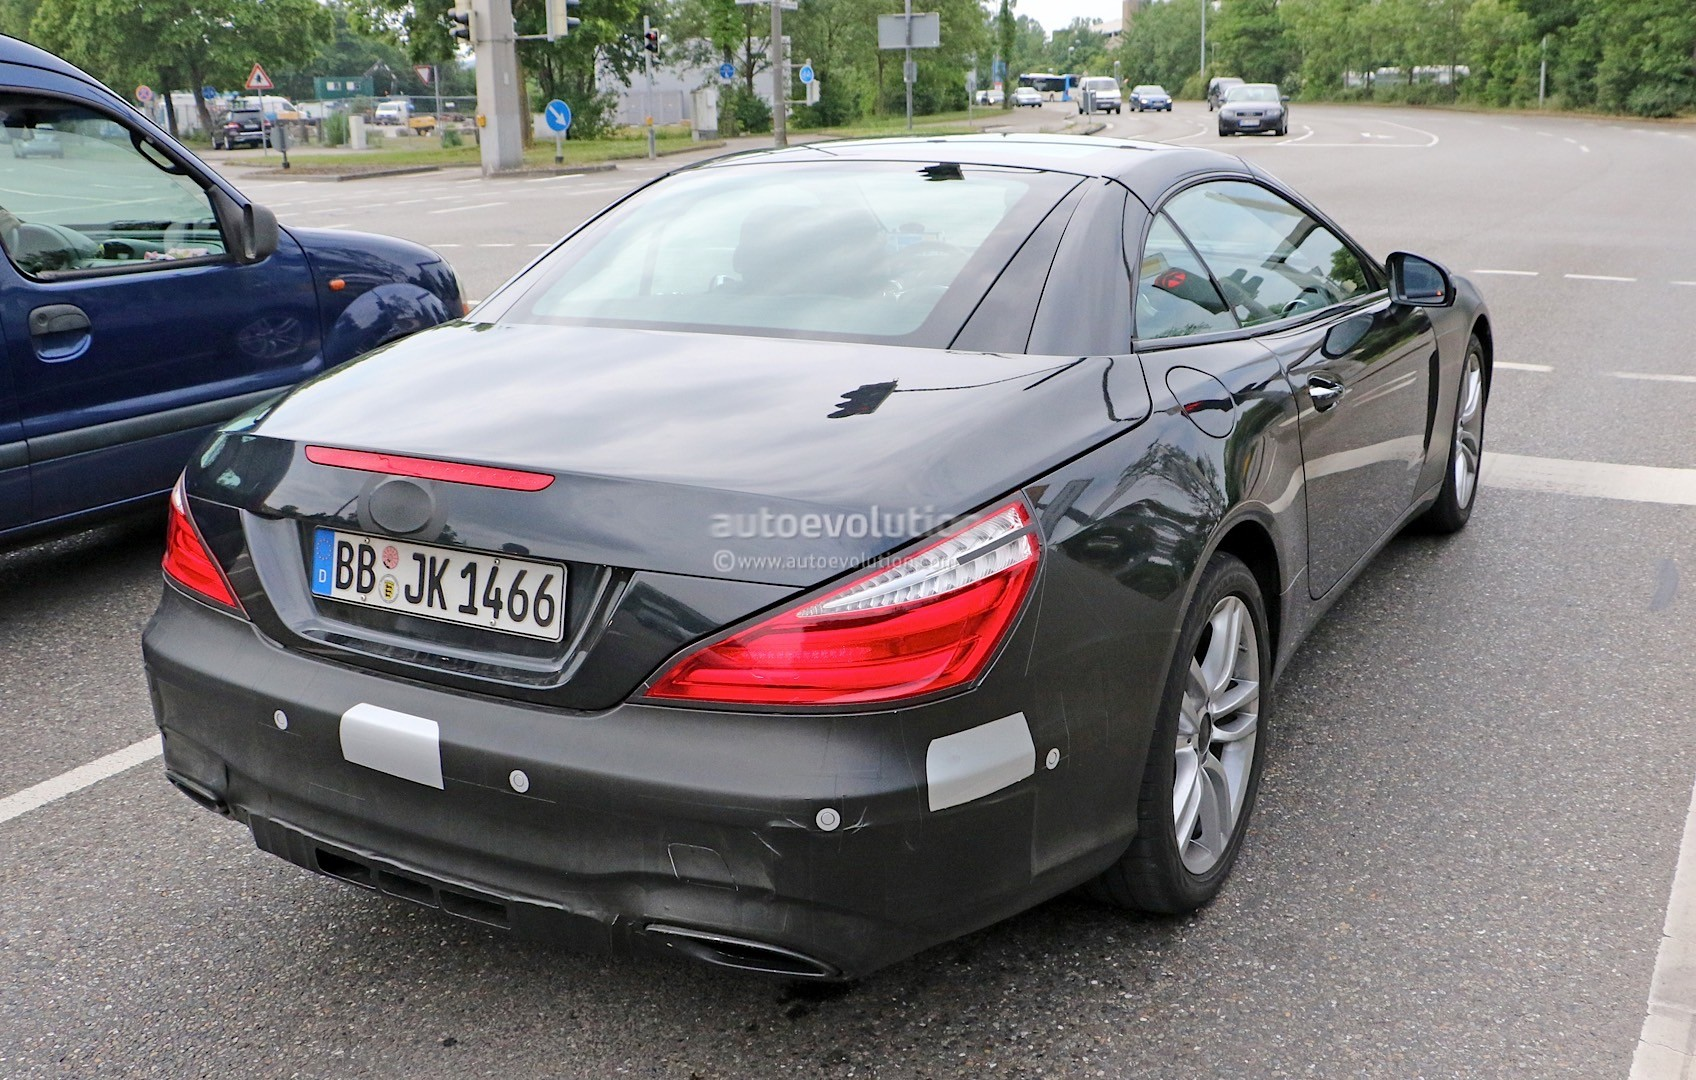 2015 - [Mercedes] SL Restylé [R231] - Page 2 Mercedes-benz-sl-facelift-spied-again-more-interior-details-come-to-light-photo-gallery_6